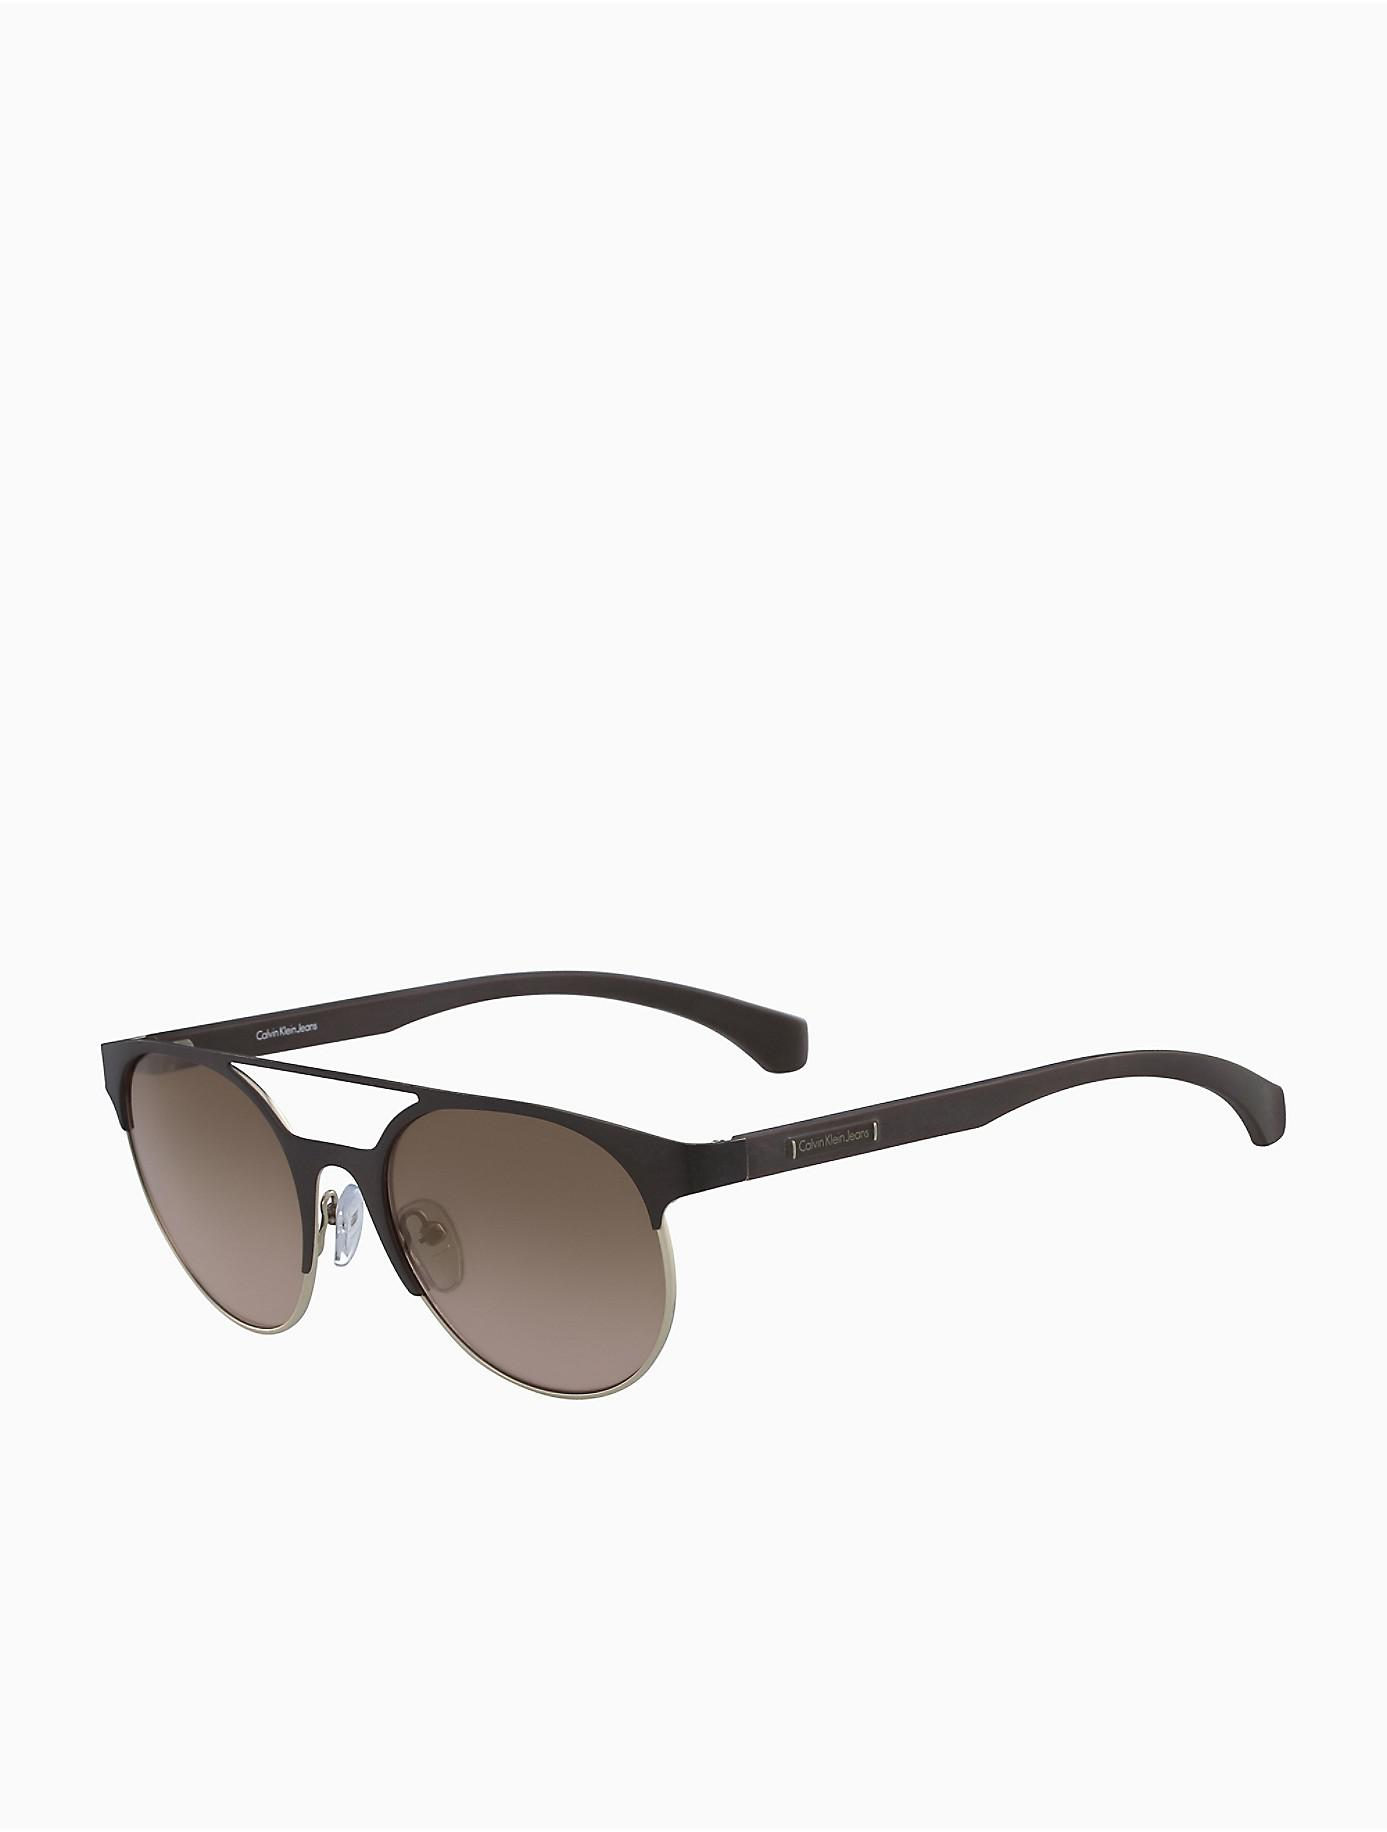 Calvin Klein 205W39nyc round shaped sunglasses Cheap Footlocker Pictures Clearance Online Fake D4l0A